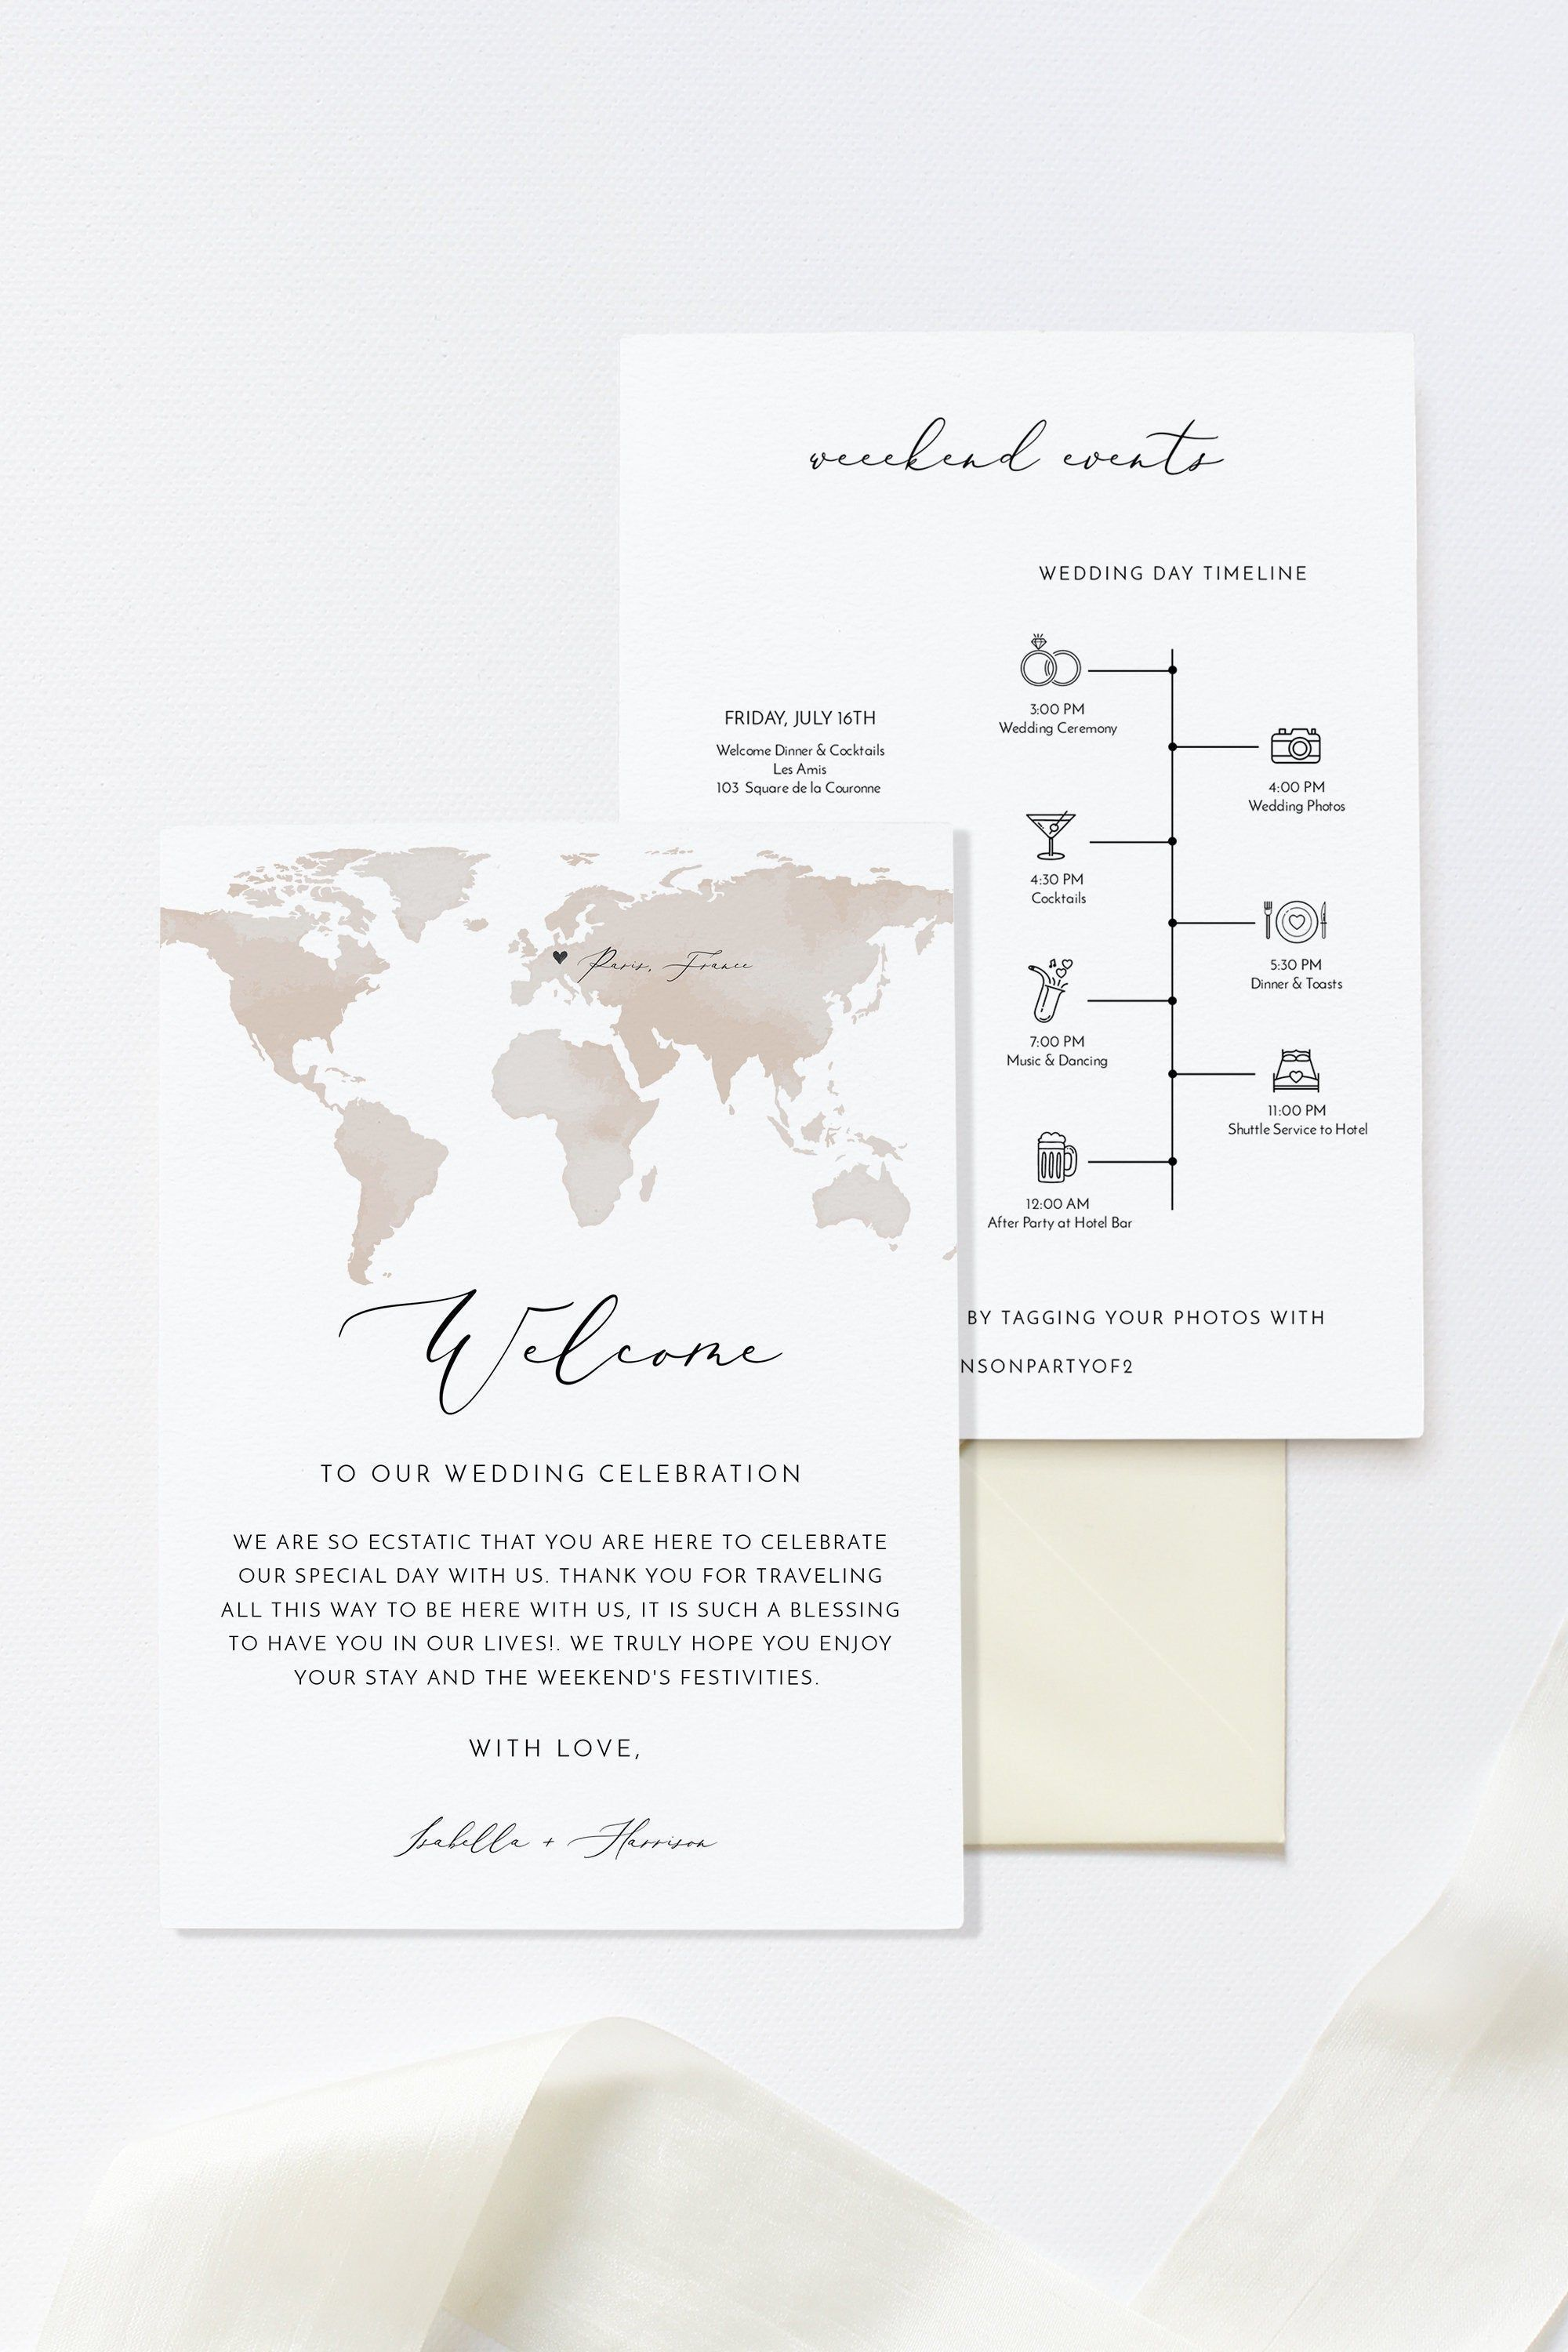 002 Beautiful Destination Wedding Welcome Letter And Itinerary Template Image Full